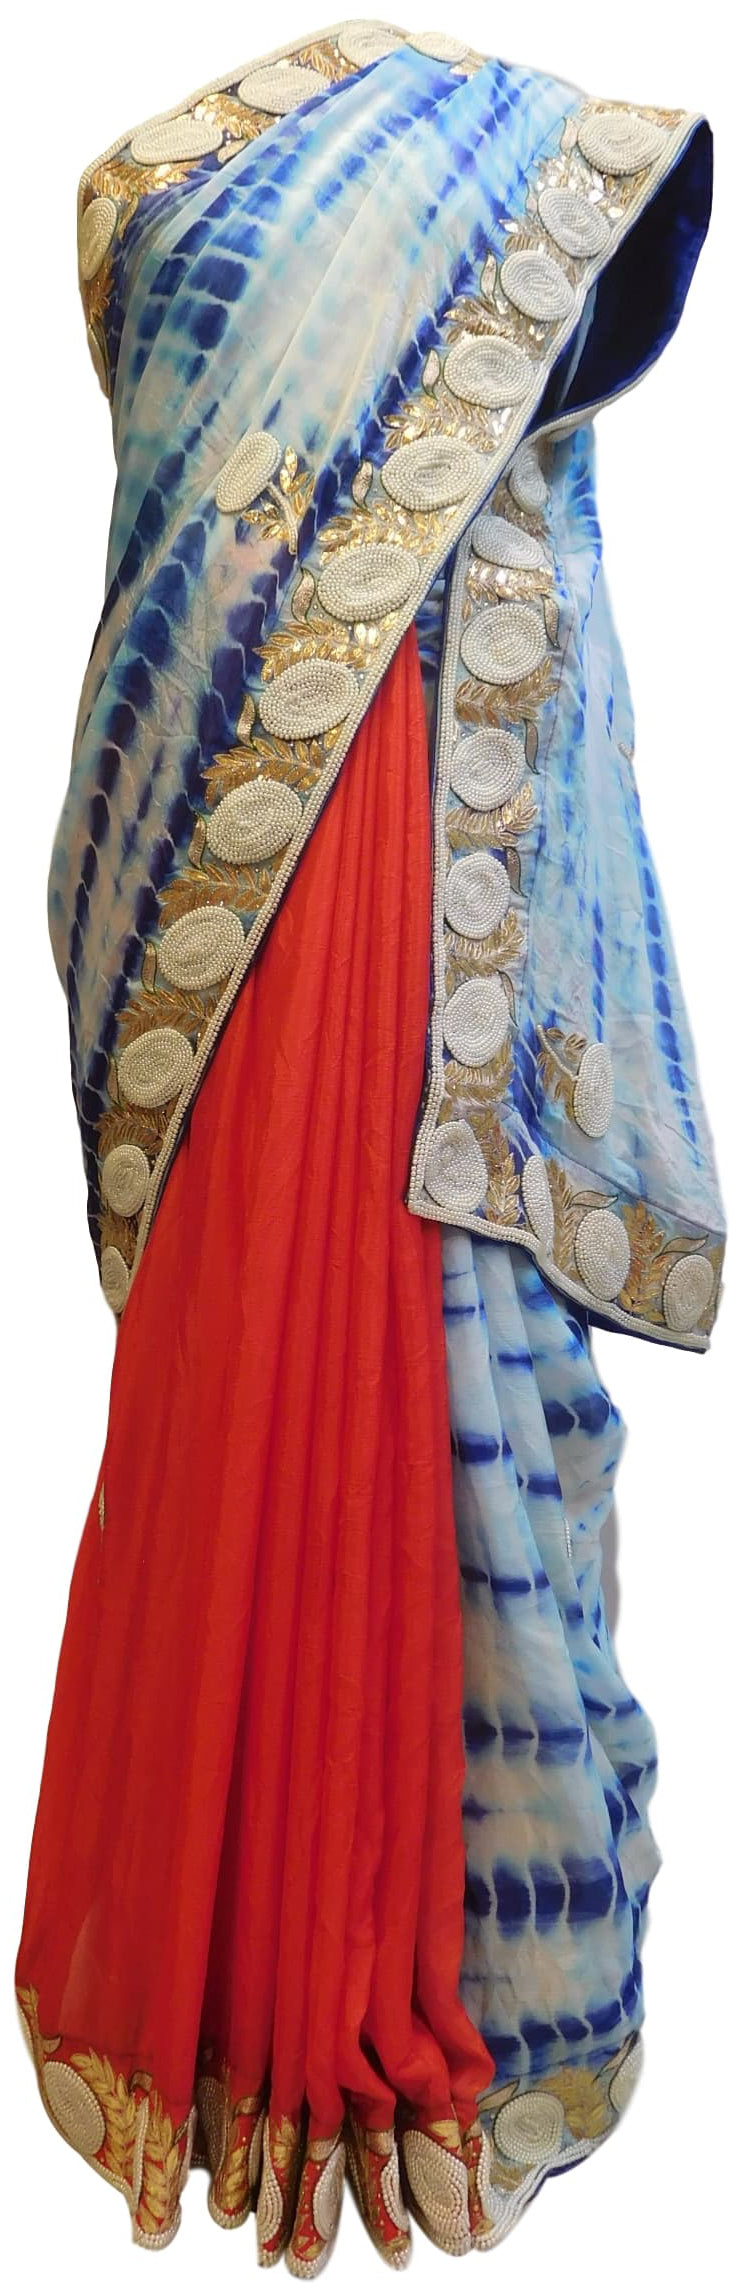 Blue White & Red Designer Crepe (Chinon) Hand Embroidery Thread Pearl Zari Gota Stone Work Saree Sari